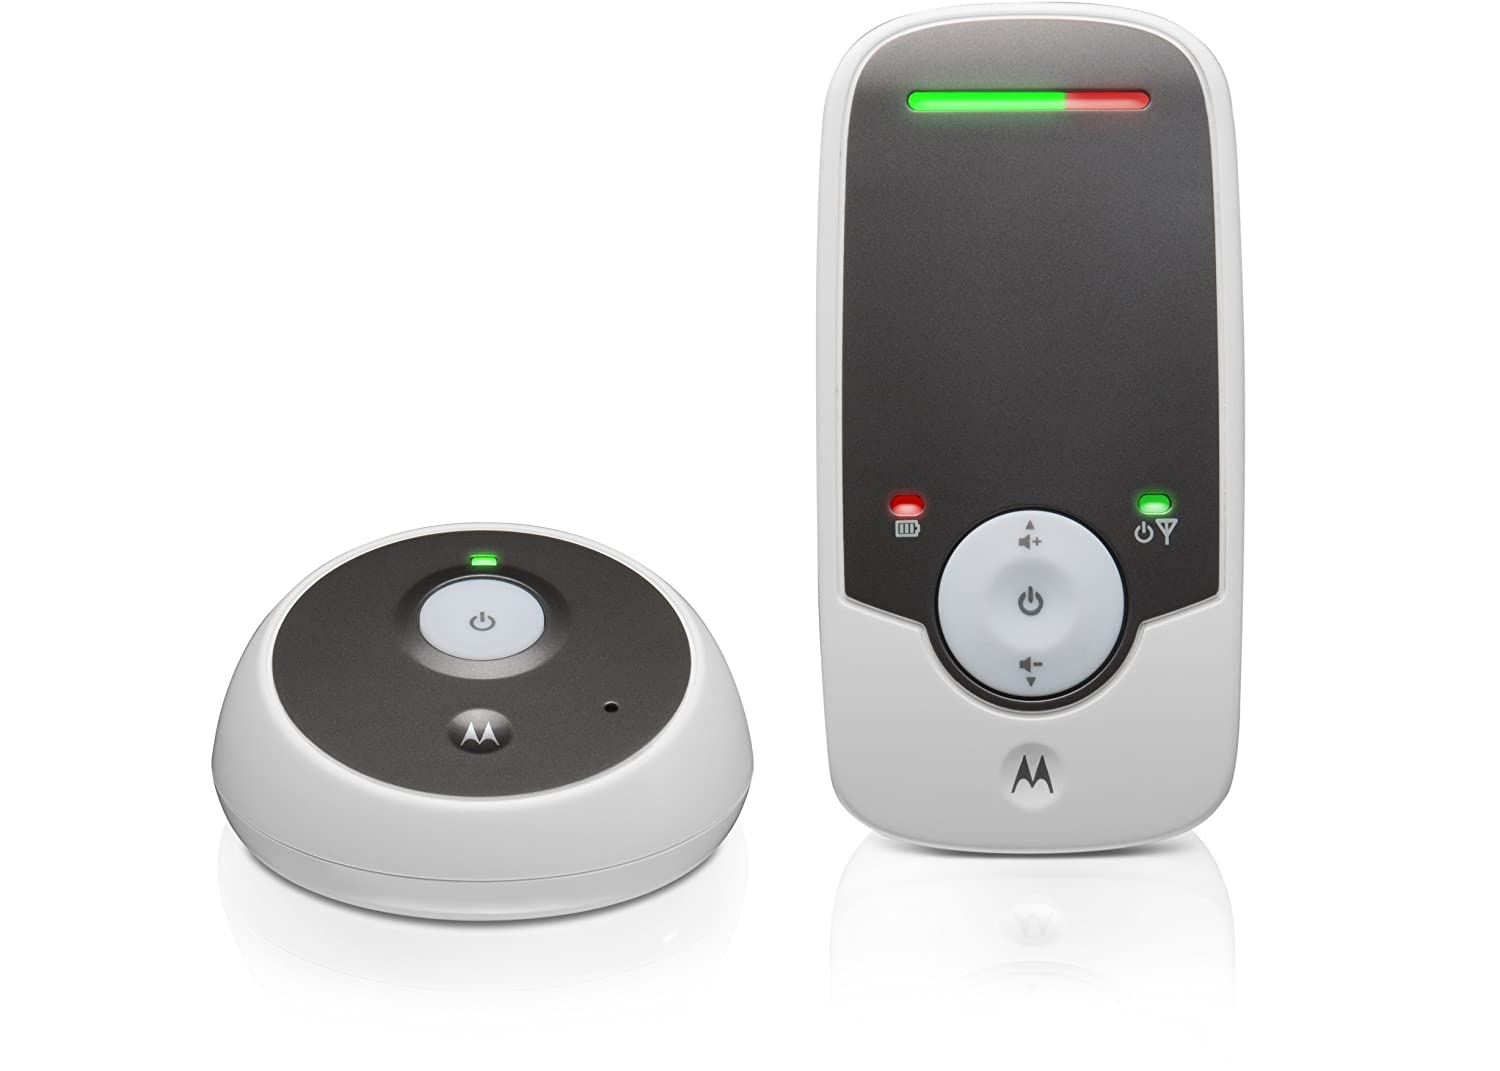 Motorola Baby monitor Audio Digitale - MBP160 - Bianco Binatone MBP11